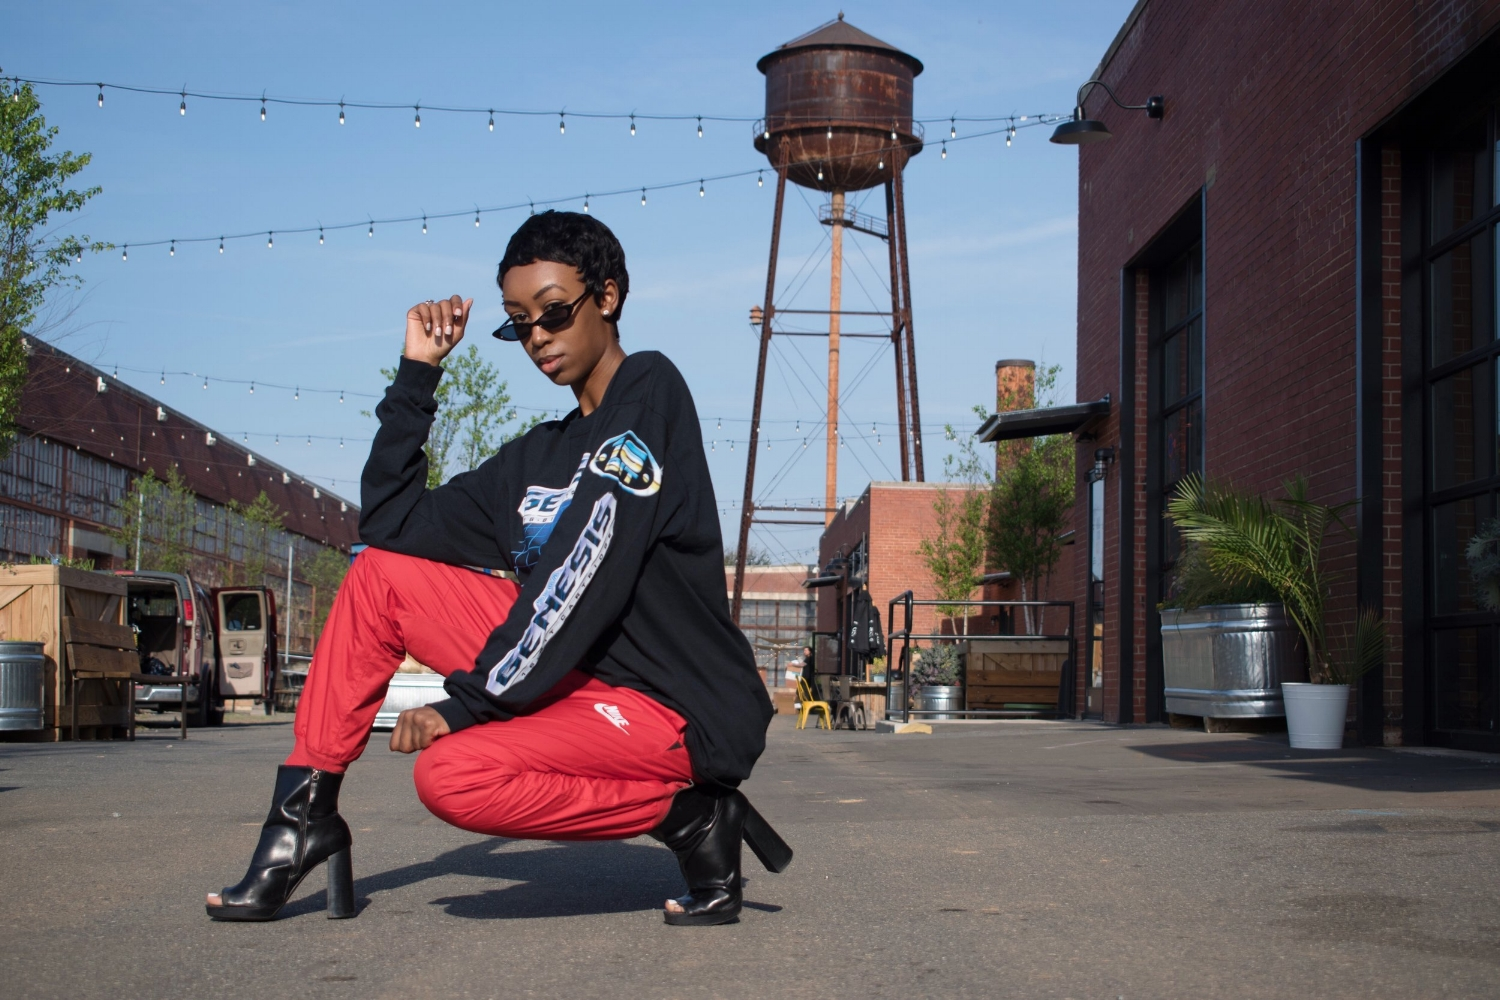 Simone Suber  of  MissSuber.com  is wearing a  Forever21  Mens top,  NIKE  Mens pants,  ZARA  shoes,  ASOS  sunglasses. Photography by  Krishanni Smith .